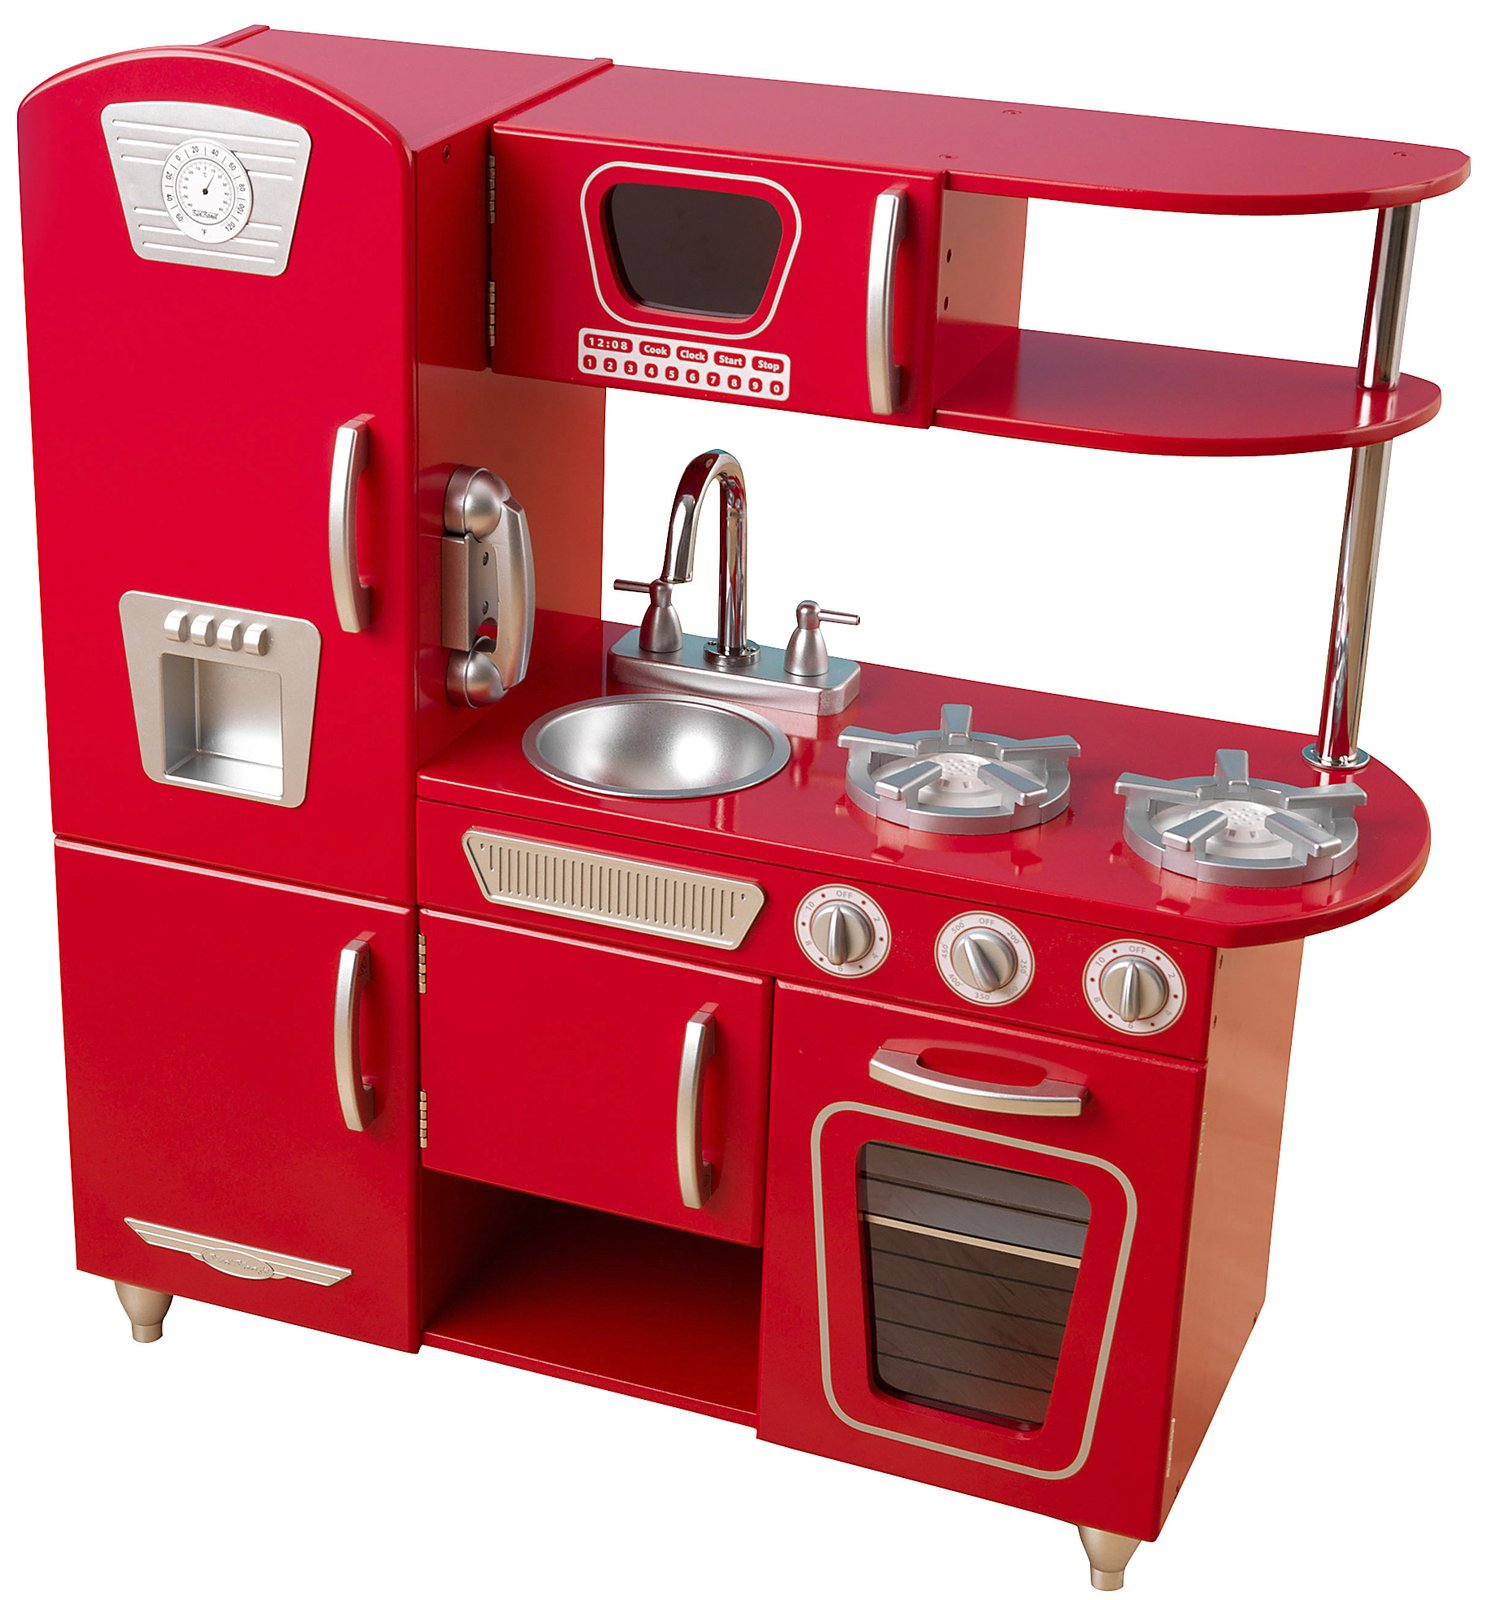 301 moved permanently - Ikea wooden kitchen playset ...